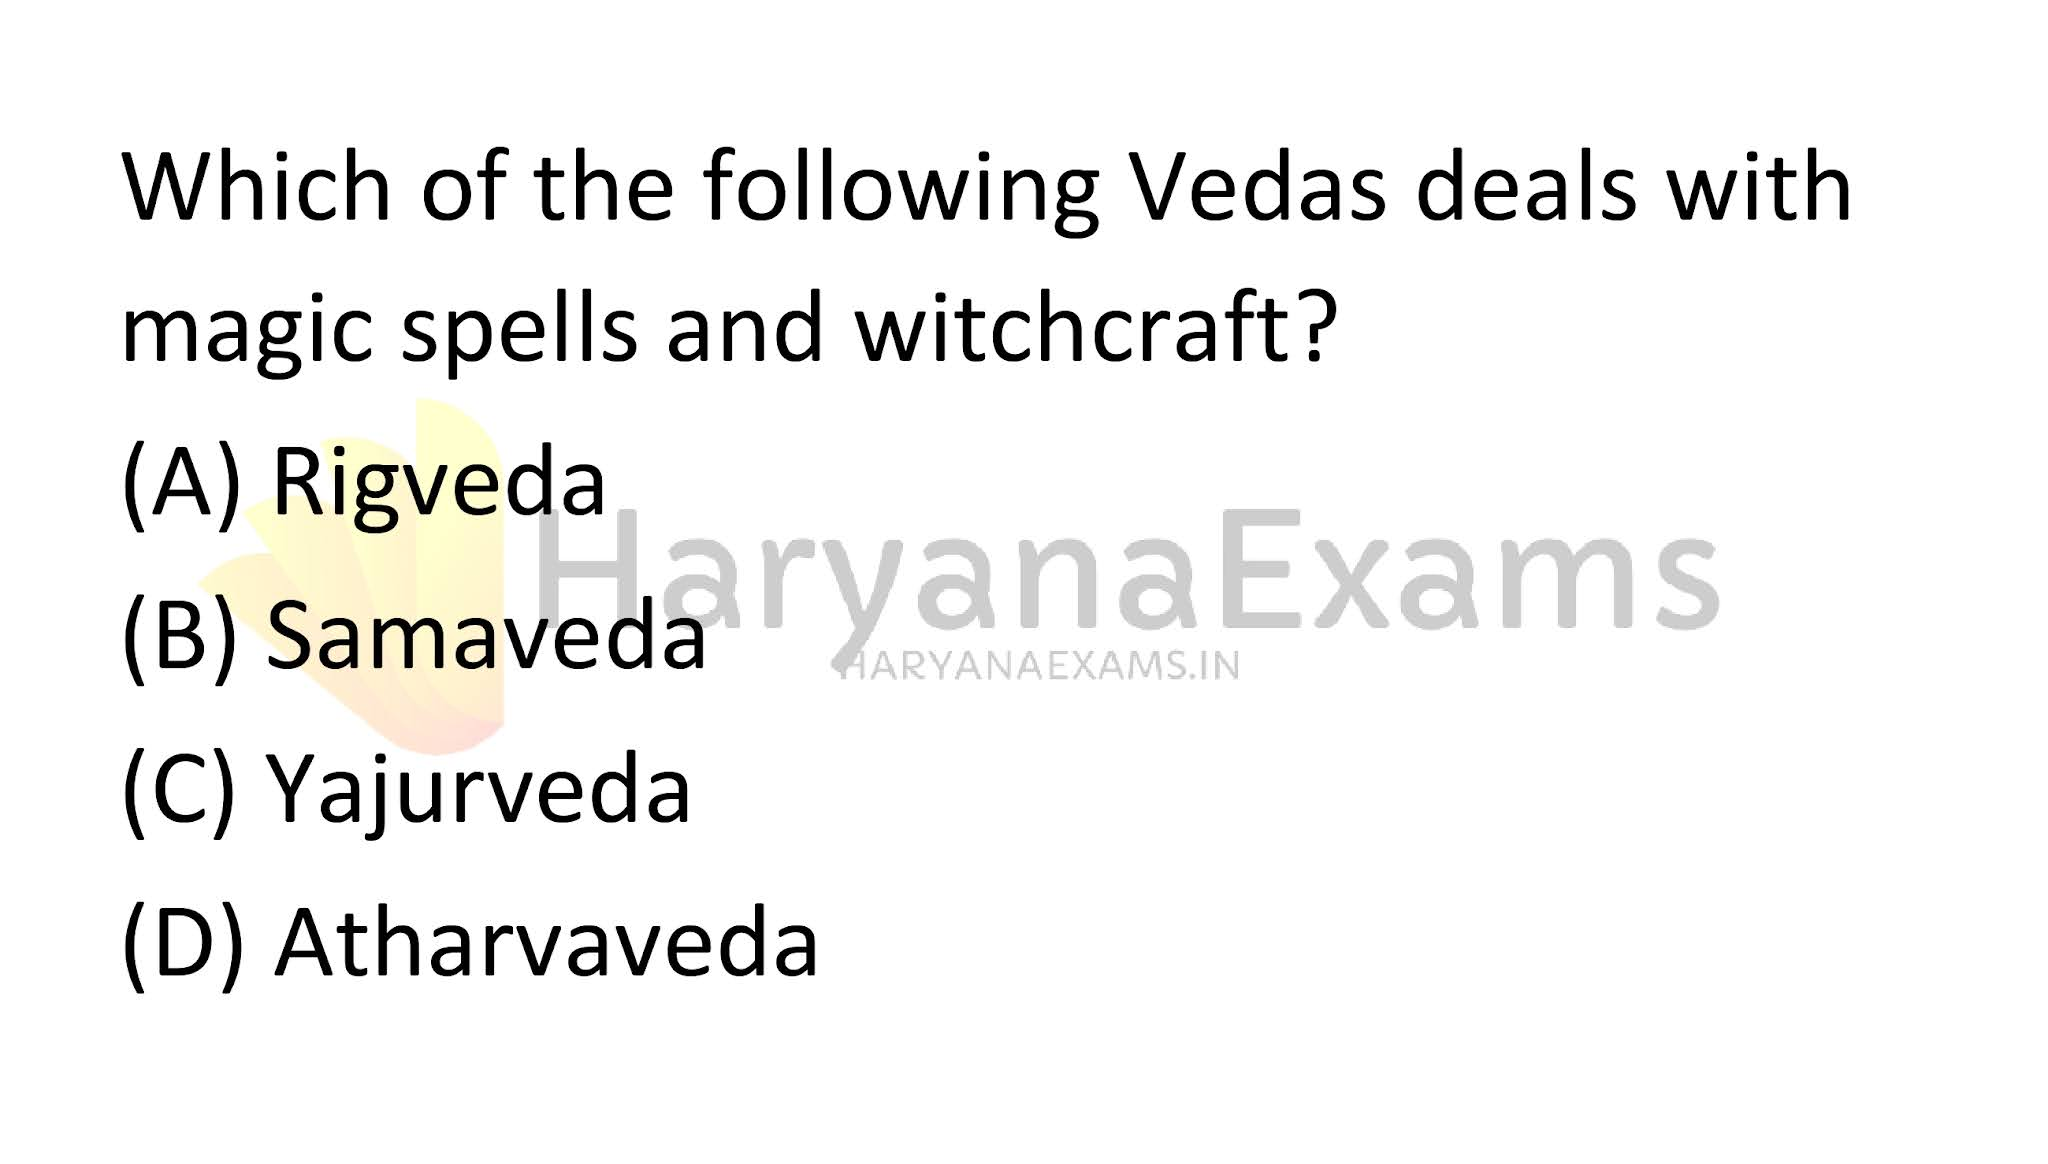 Which of the following Vedas deals with magic spells and witchcraft?